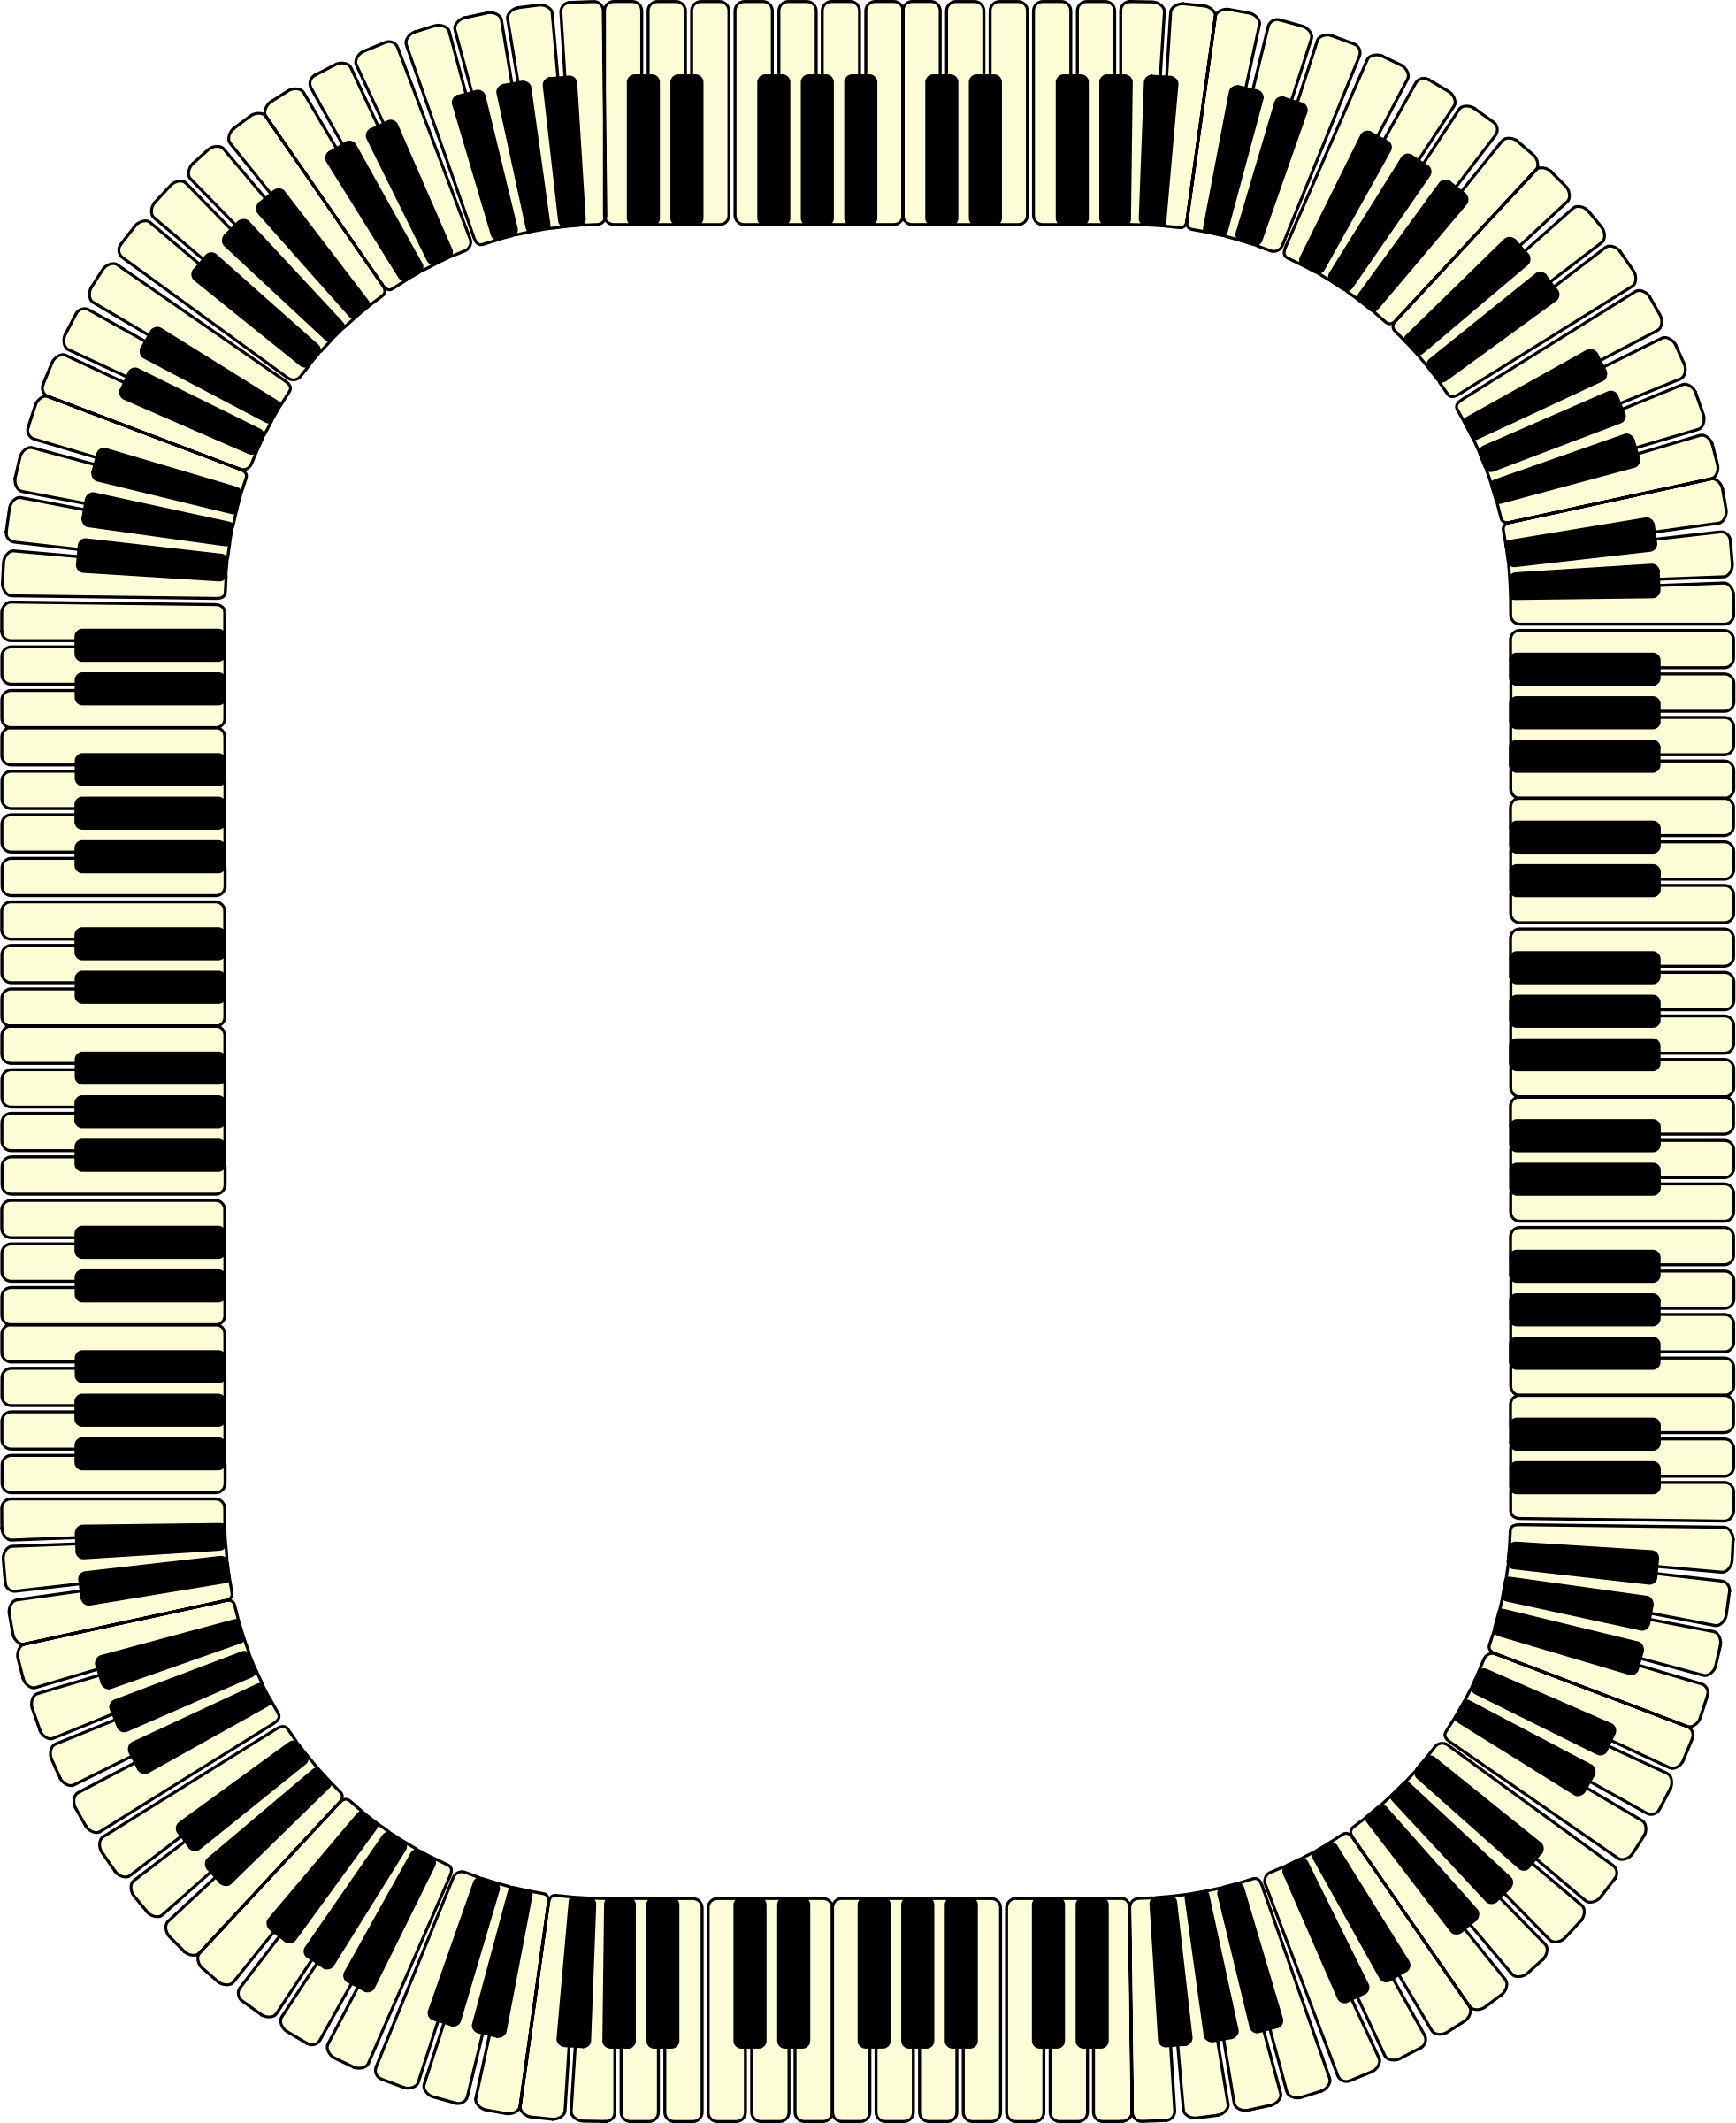 Piano keys frame (rectangle, inverted) by Firkin